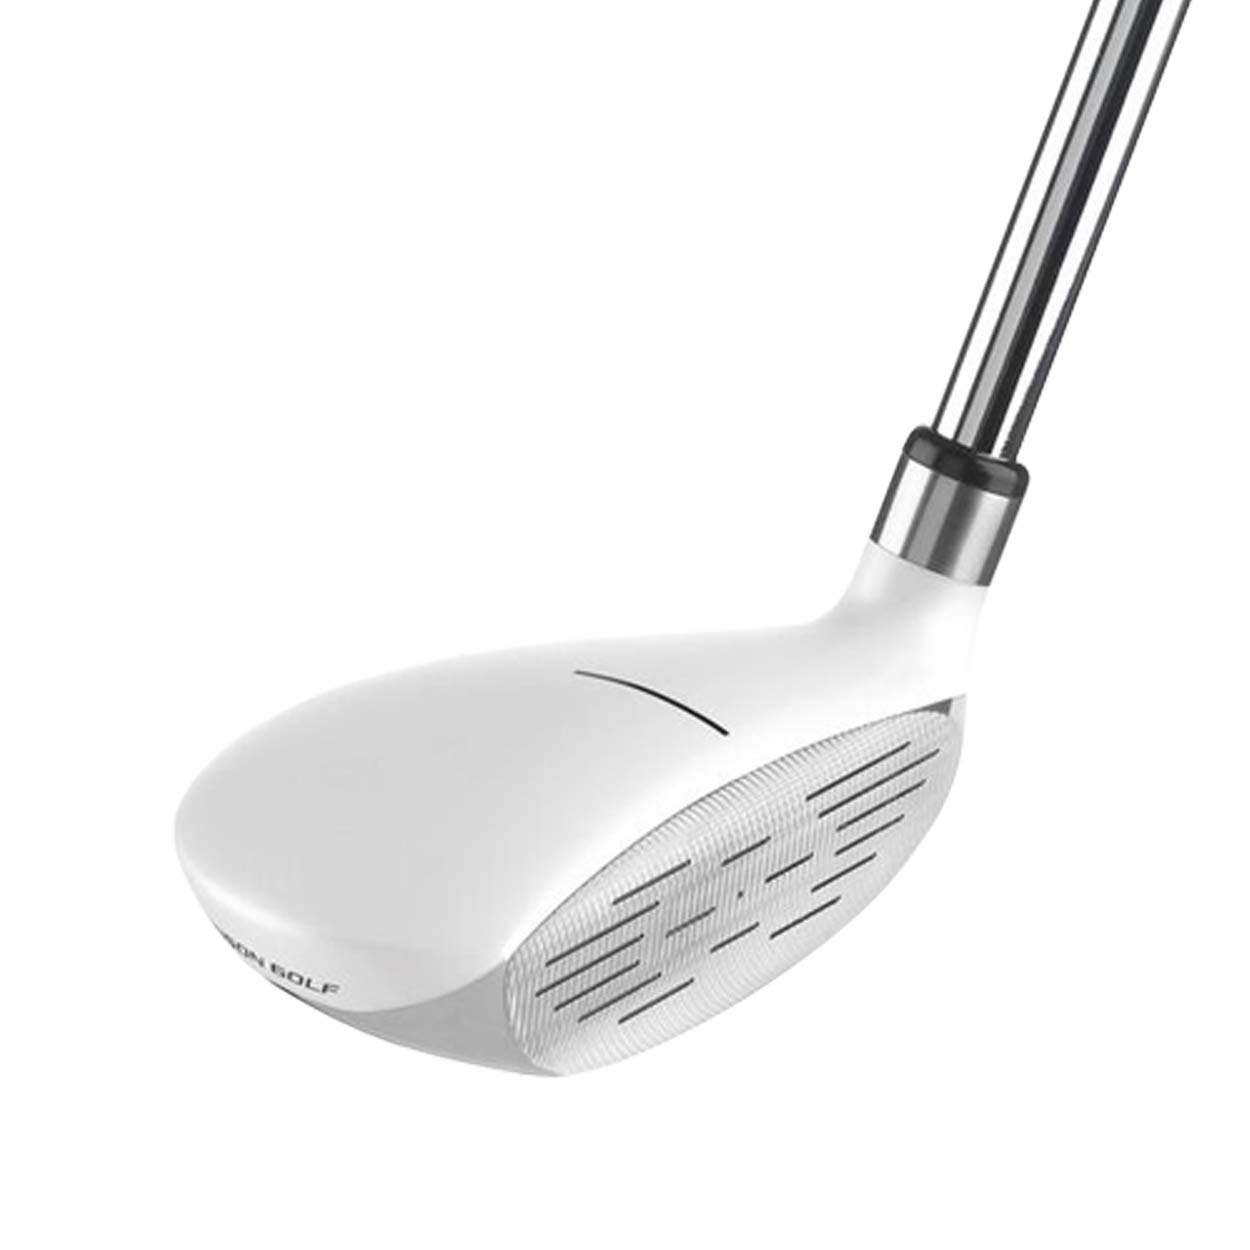 Amazon.com: Sorenson Golf JXS-HB Hybrid Blade Putterwood, 34 ...